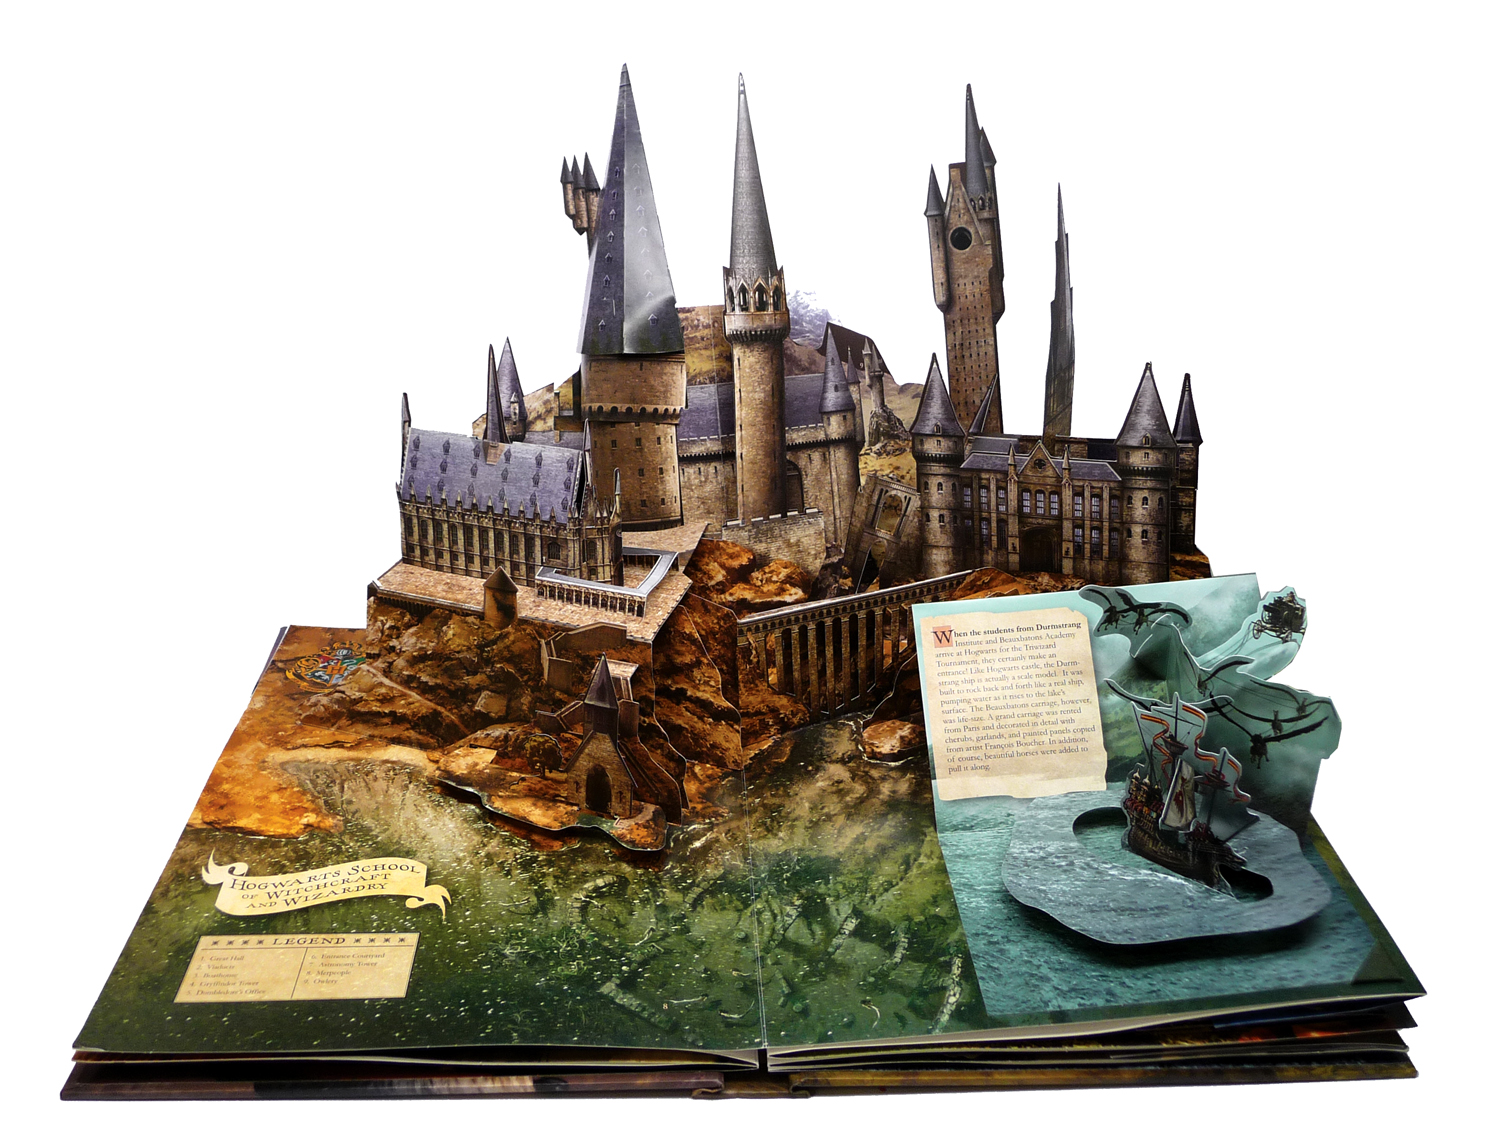 Harry Potter Hogwarts Hogwarts Harry Potter Photo 30982889 Fanpop